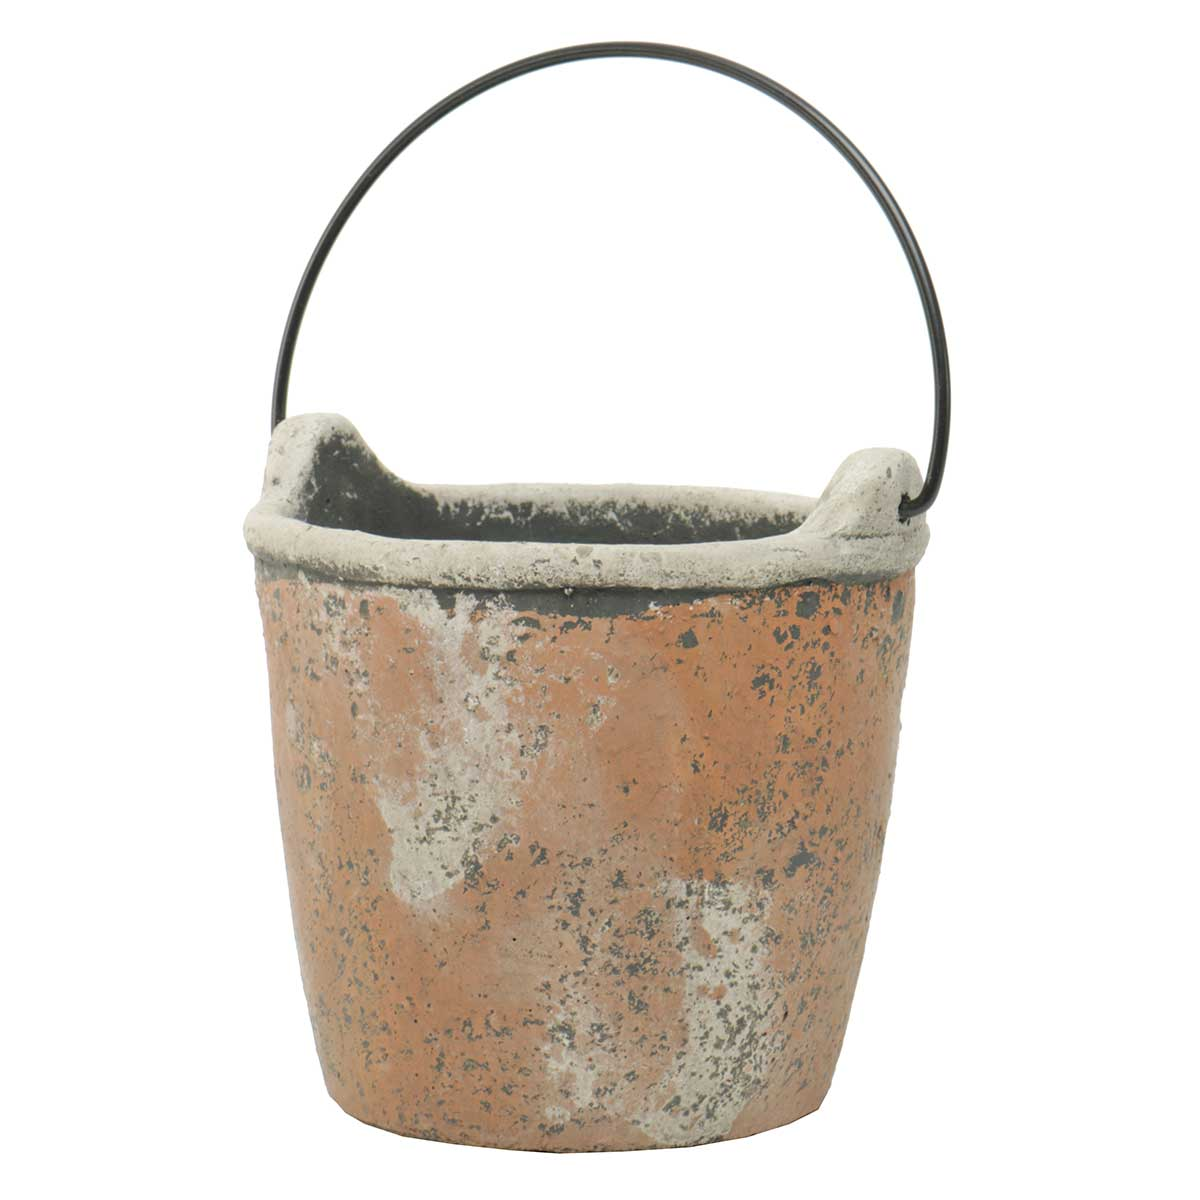 "PAIL WITH HANDLE 6""X6.5"" CONCRETE"